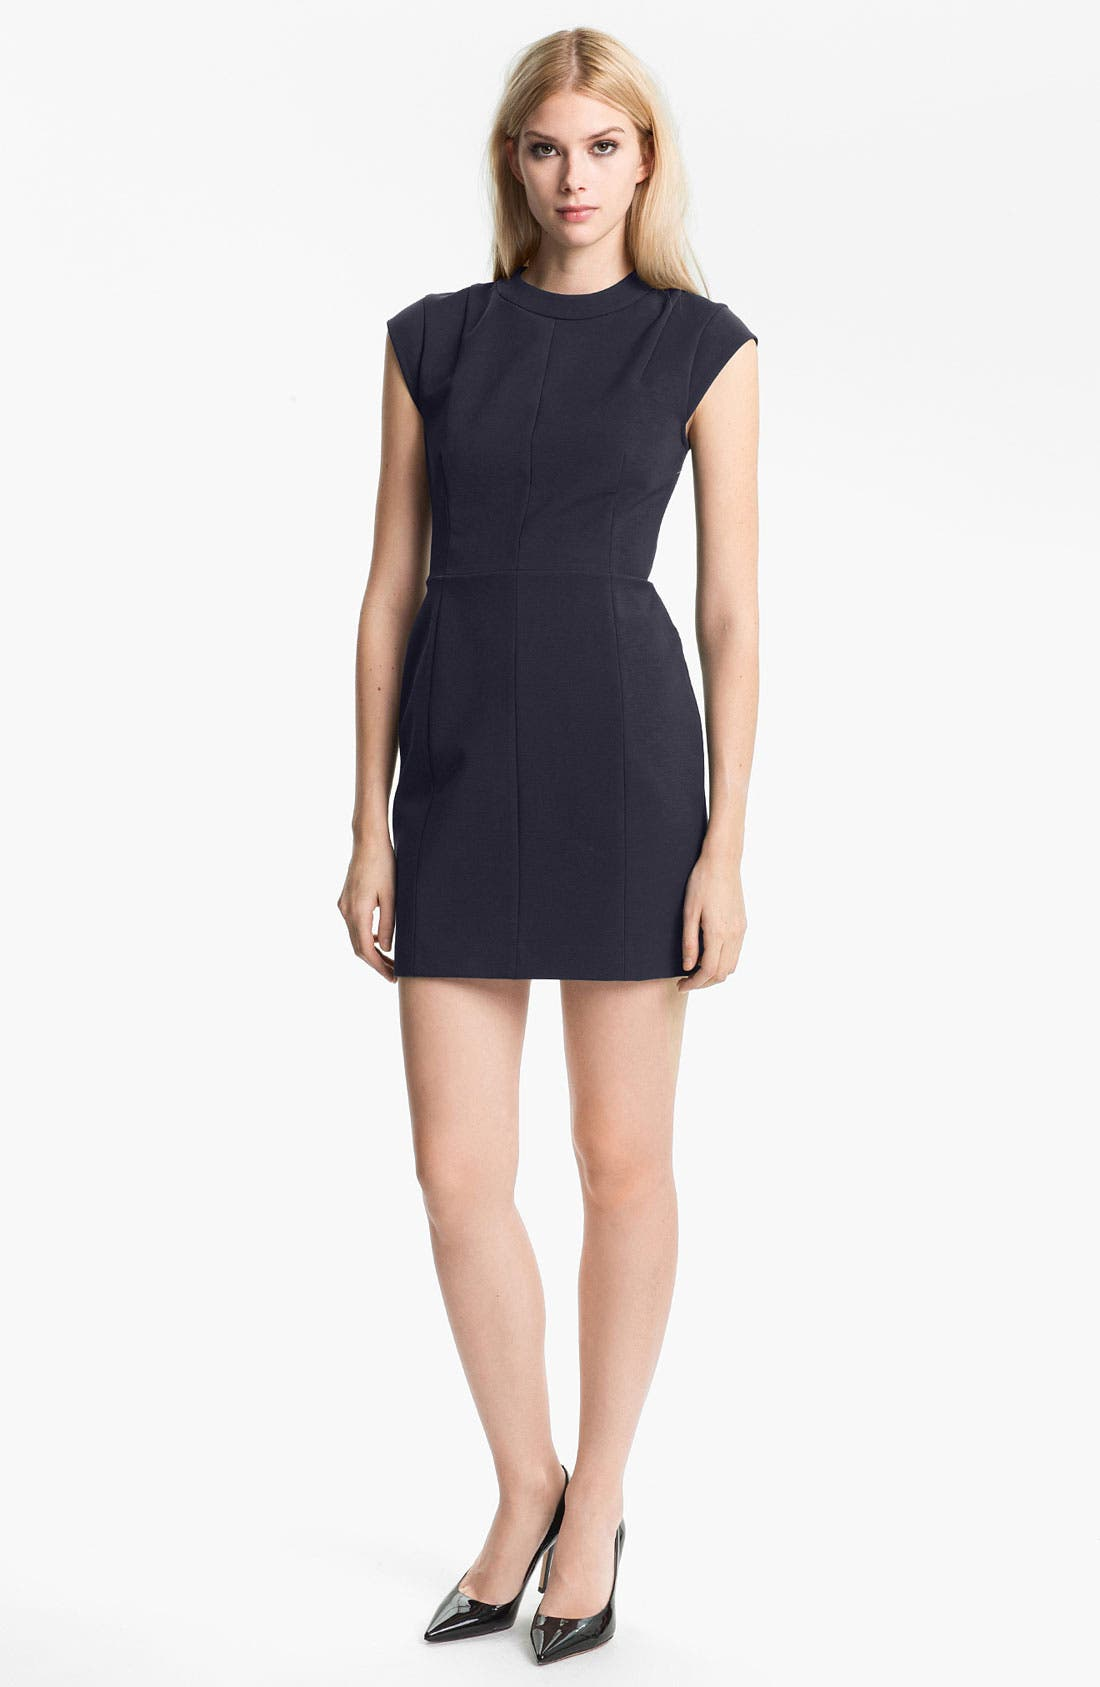 Alternate Image 1 Selected - Theory 'Orinthia' Cotton Blend Sheath Dress